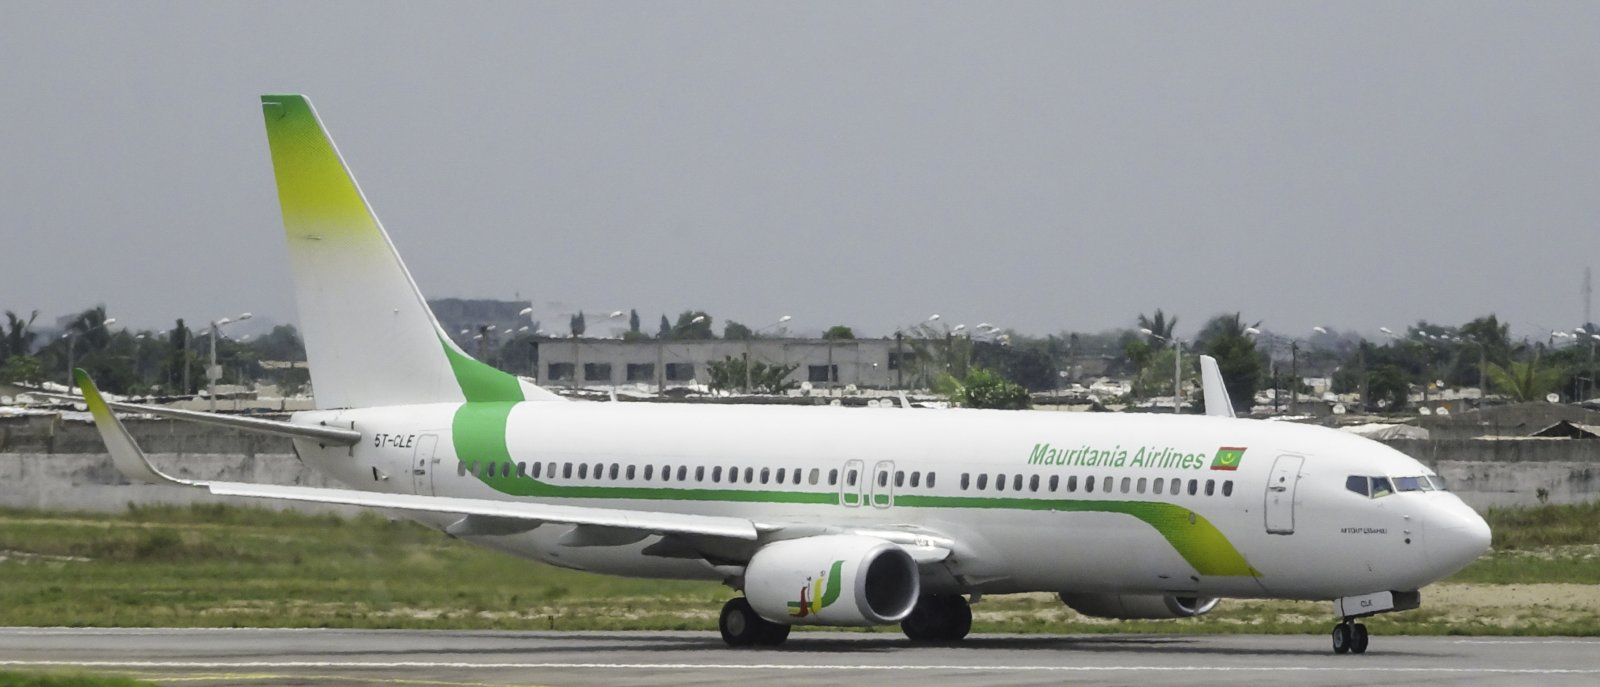 Mauritania Airlines Boeing 737-88V 5T-CLE (5T=Mauritania)